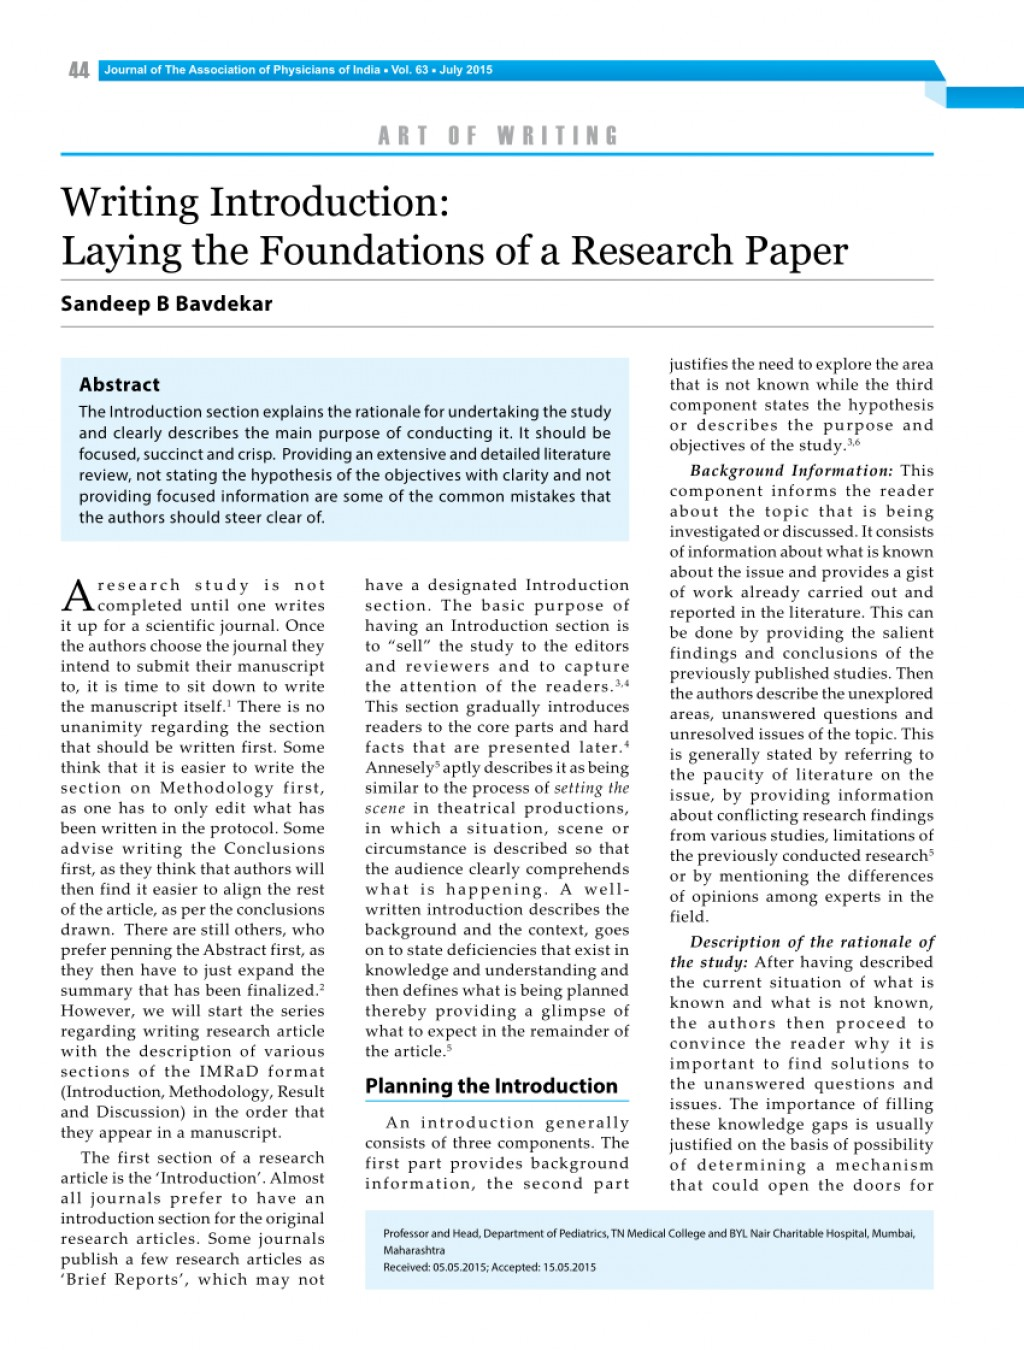 004 Largepreview Research Paper Writingn Introduction To Top Writing An A Intro Steps In Large